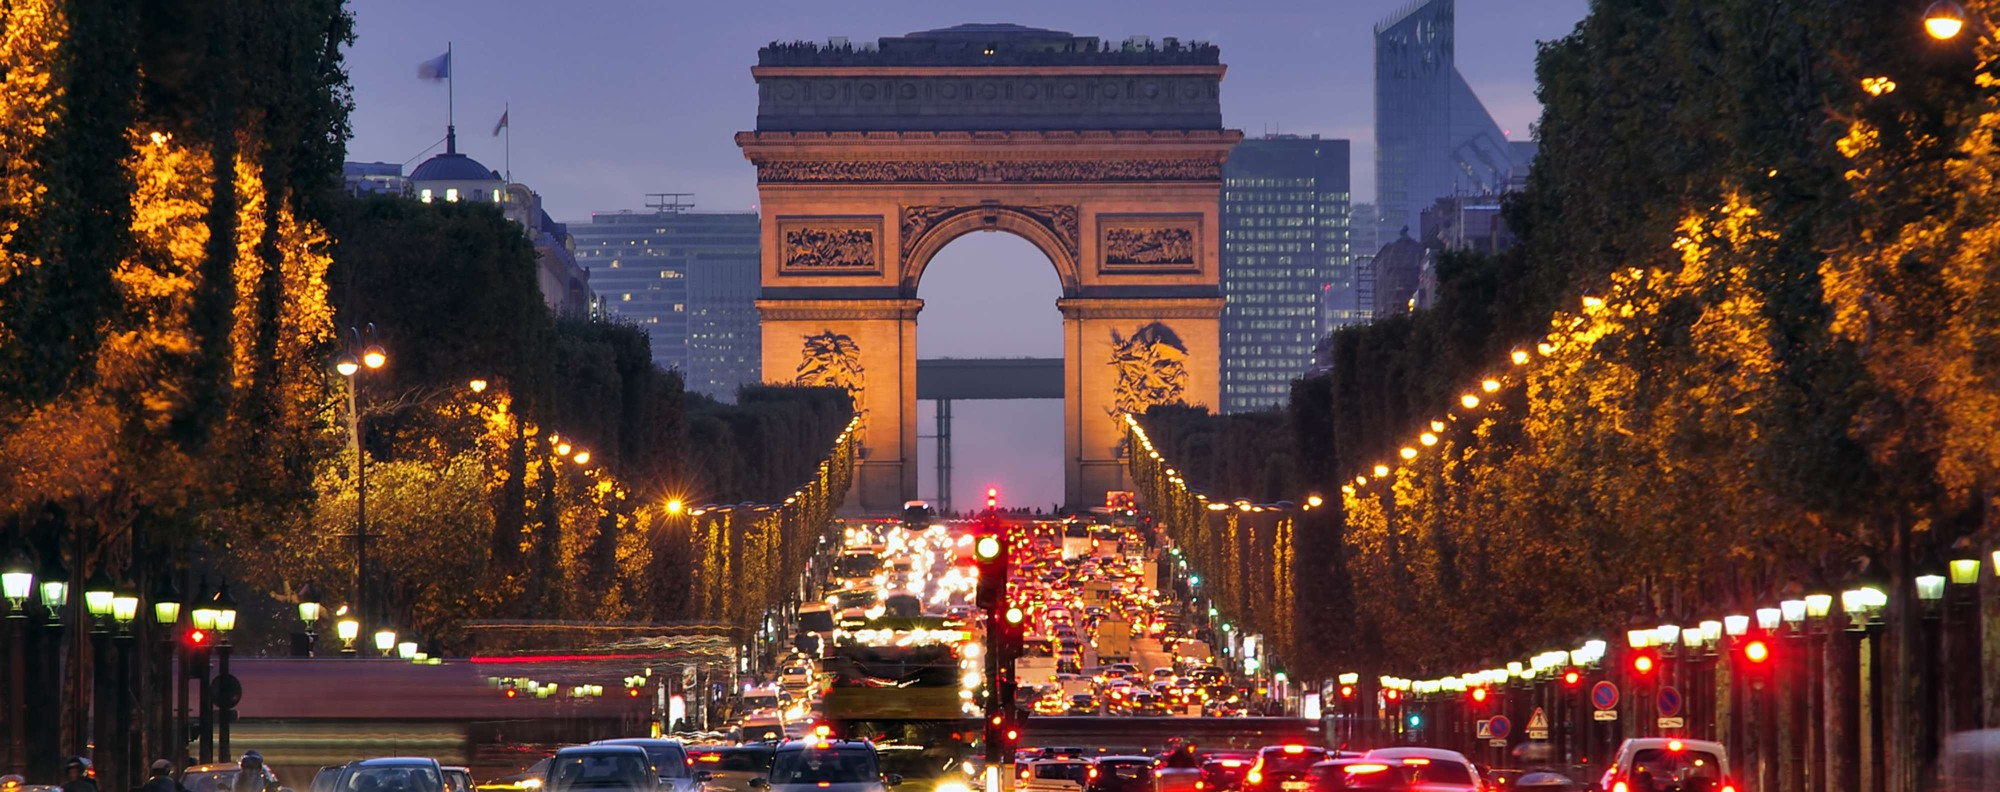 The Champs-Elysees, in Paris